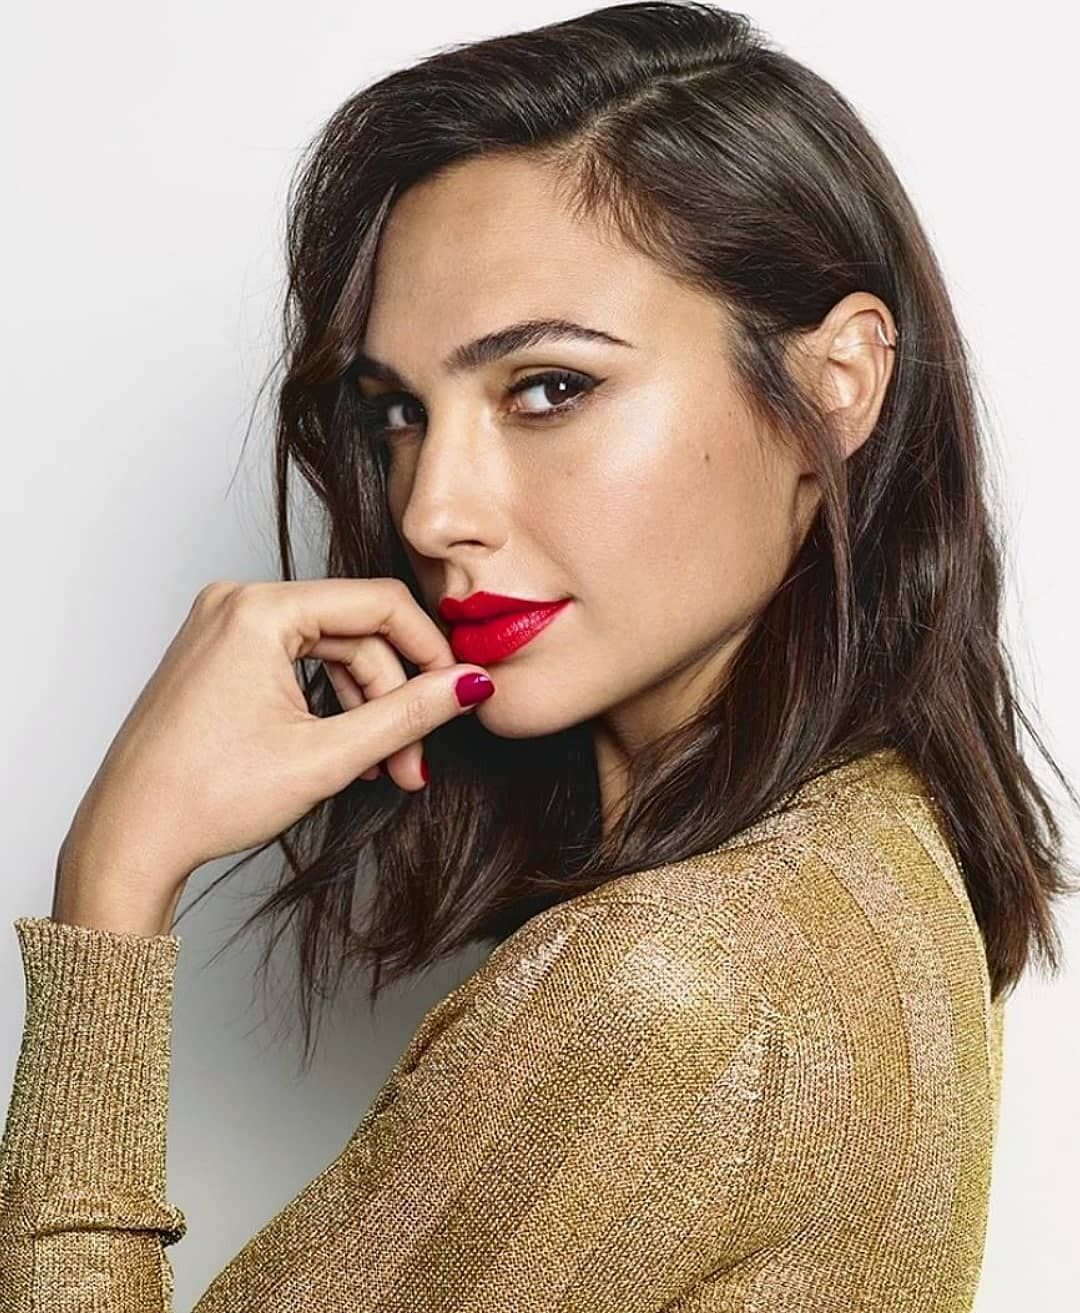 Gal Gadot Hot Red Lips Pics - Gal Gadot Net Worth, Pics, Wallpapers, Career and Biography